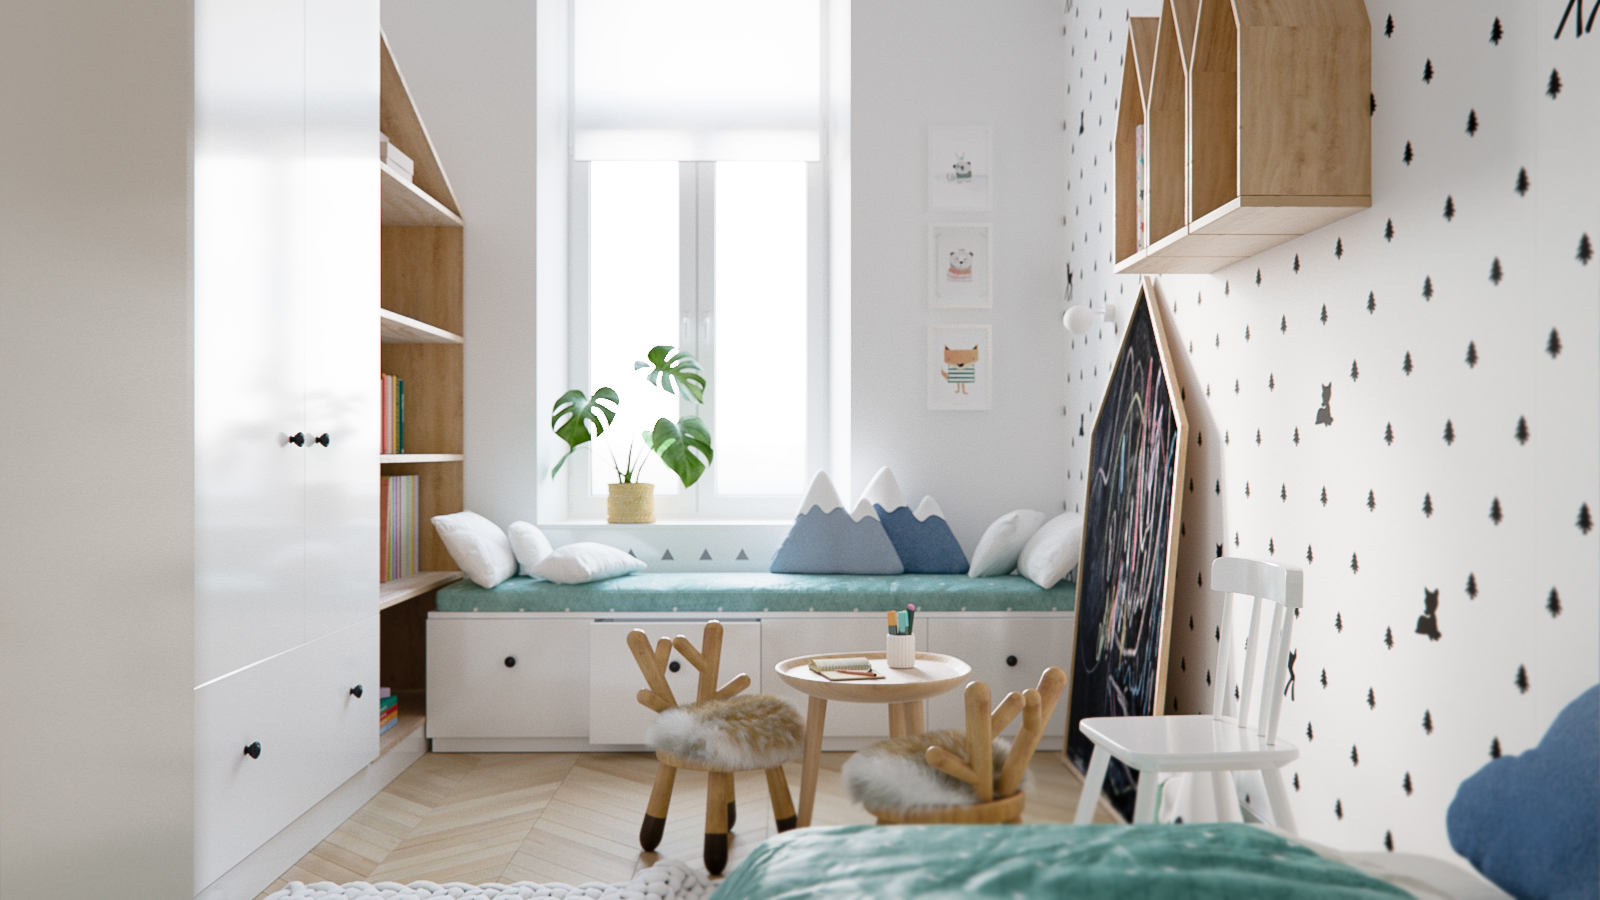 Modern Scandinavian Style Home Design For Young Families: 2 Examples